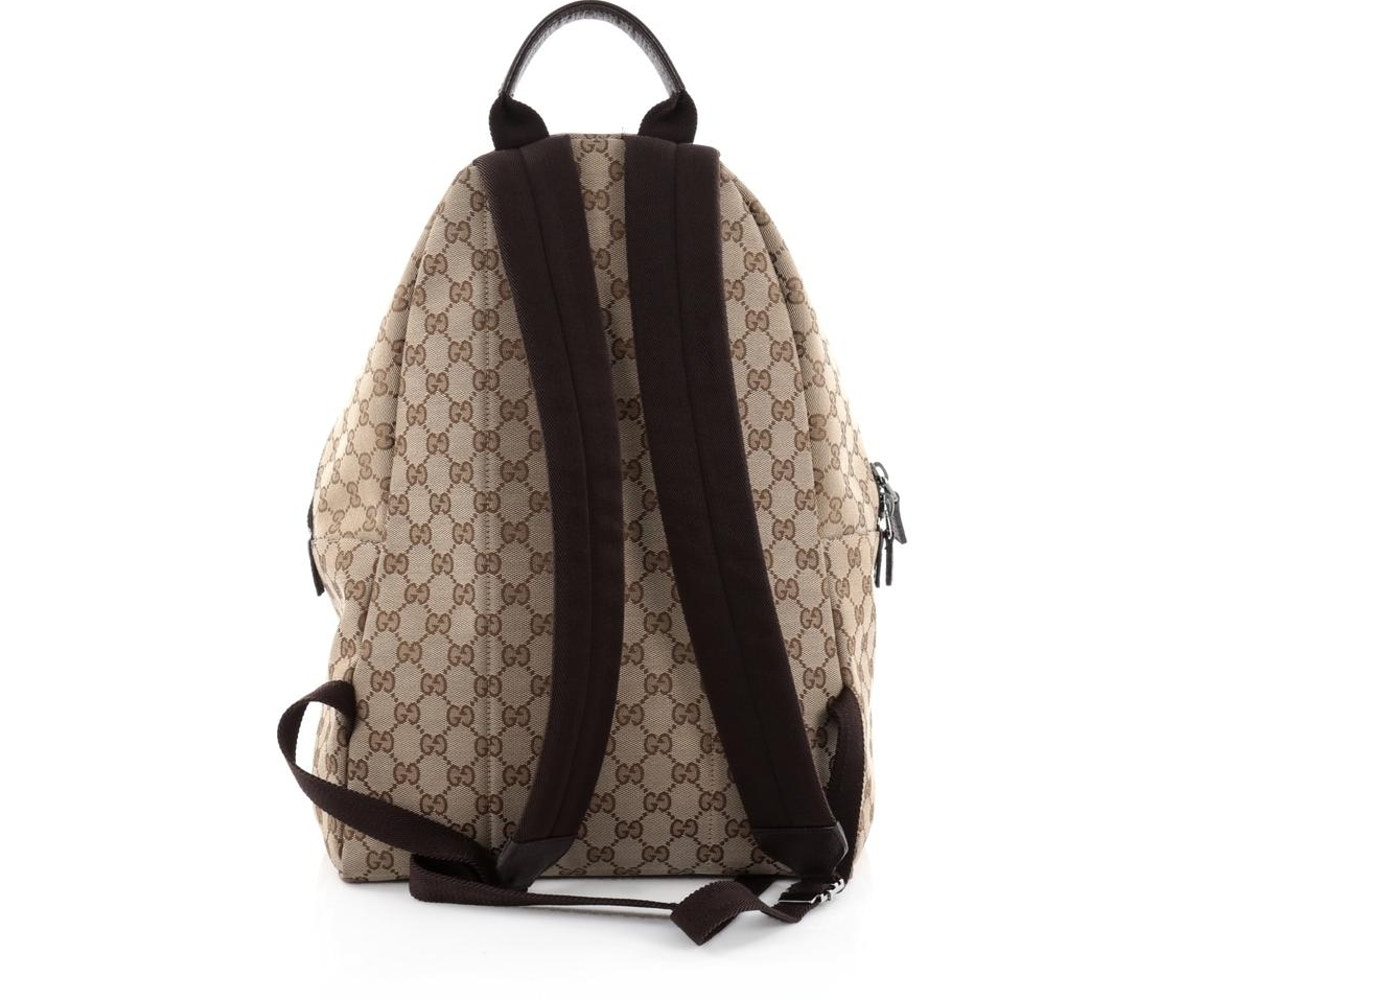 46bf005b519 Gucci Web Backpack GG Web Stripes Medium Brown Green Red